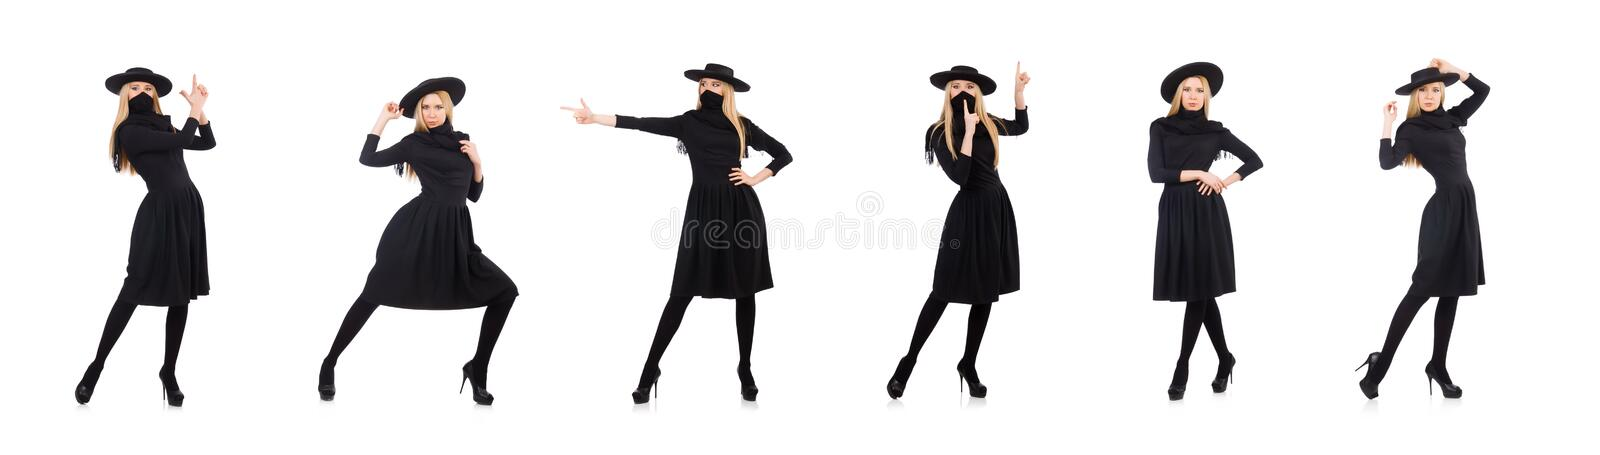 Woman in long black dress isolated on white royalty free stock photography